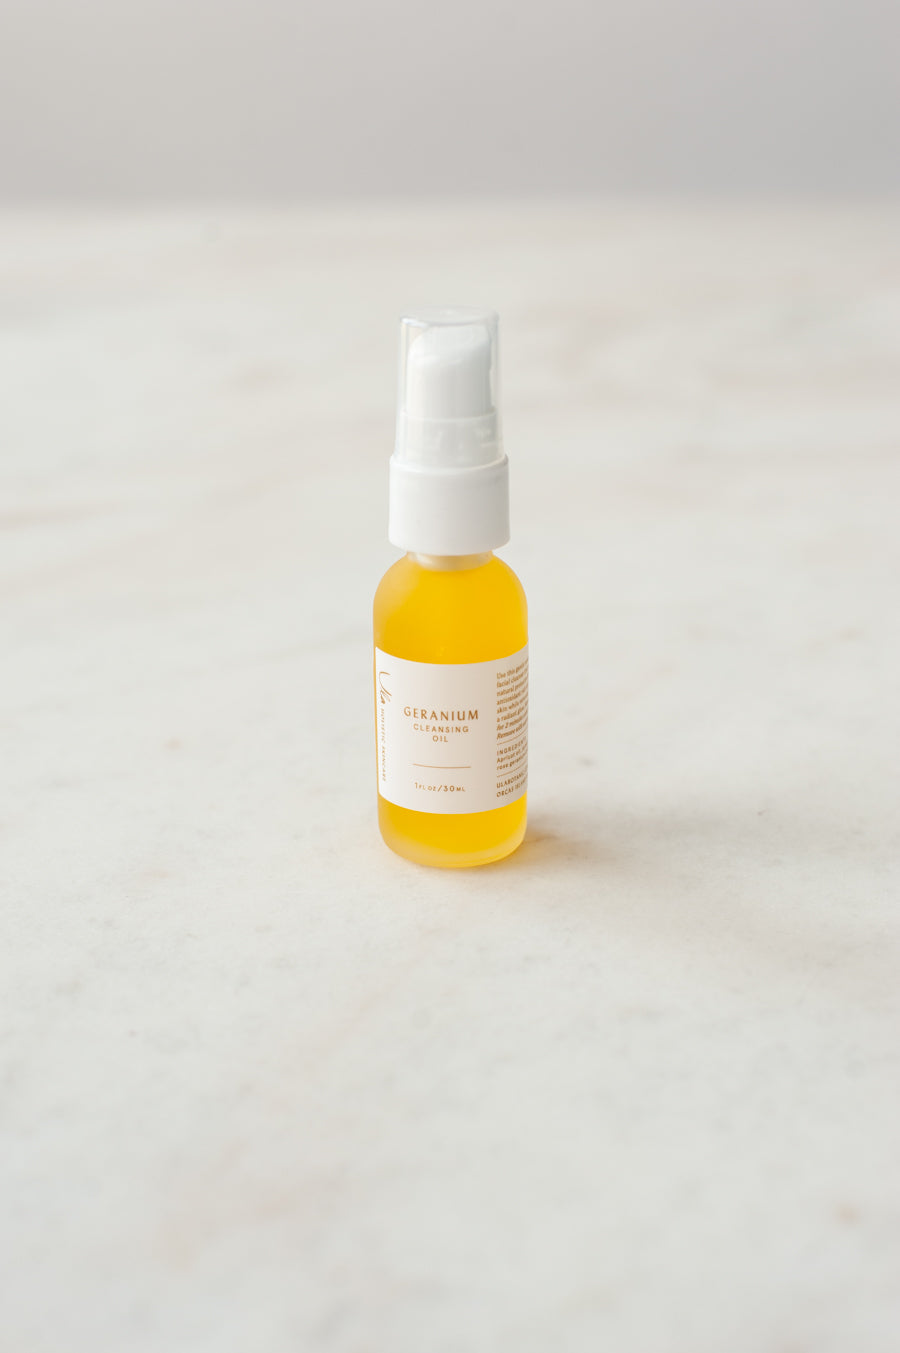 Geranium Cleansing Oil